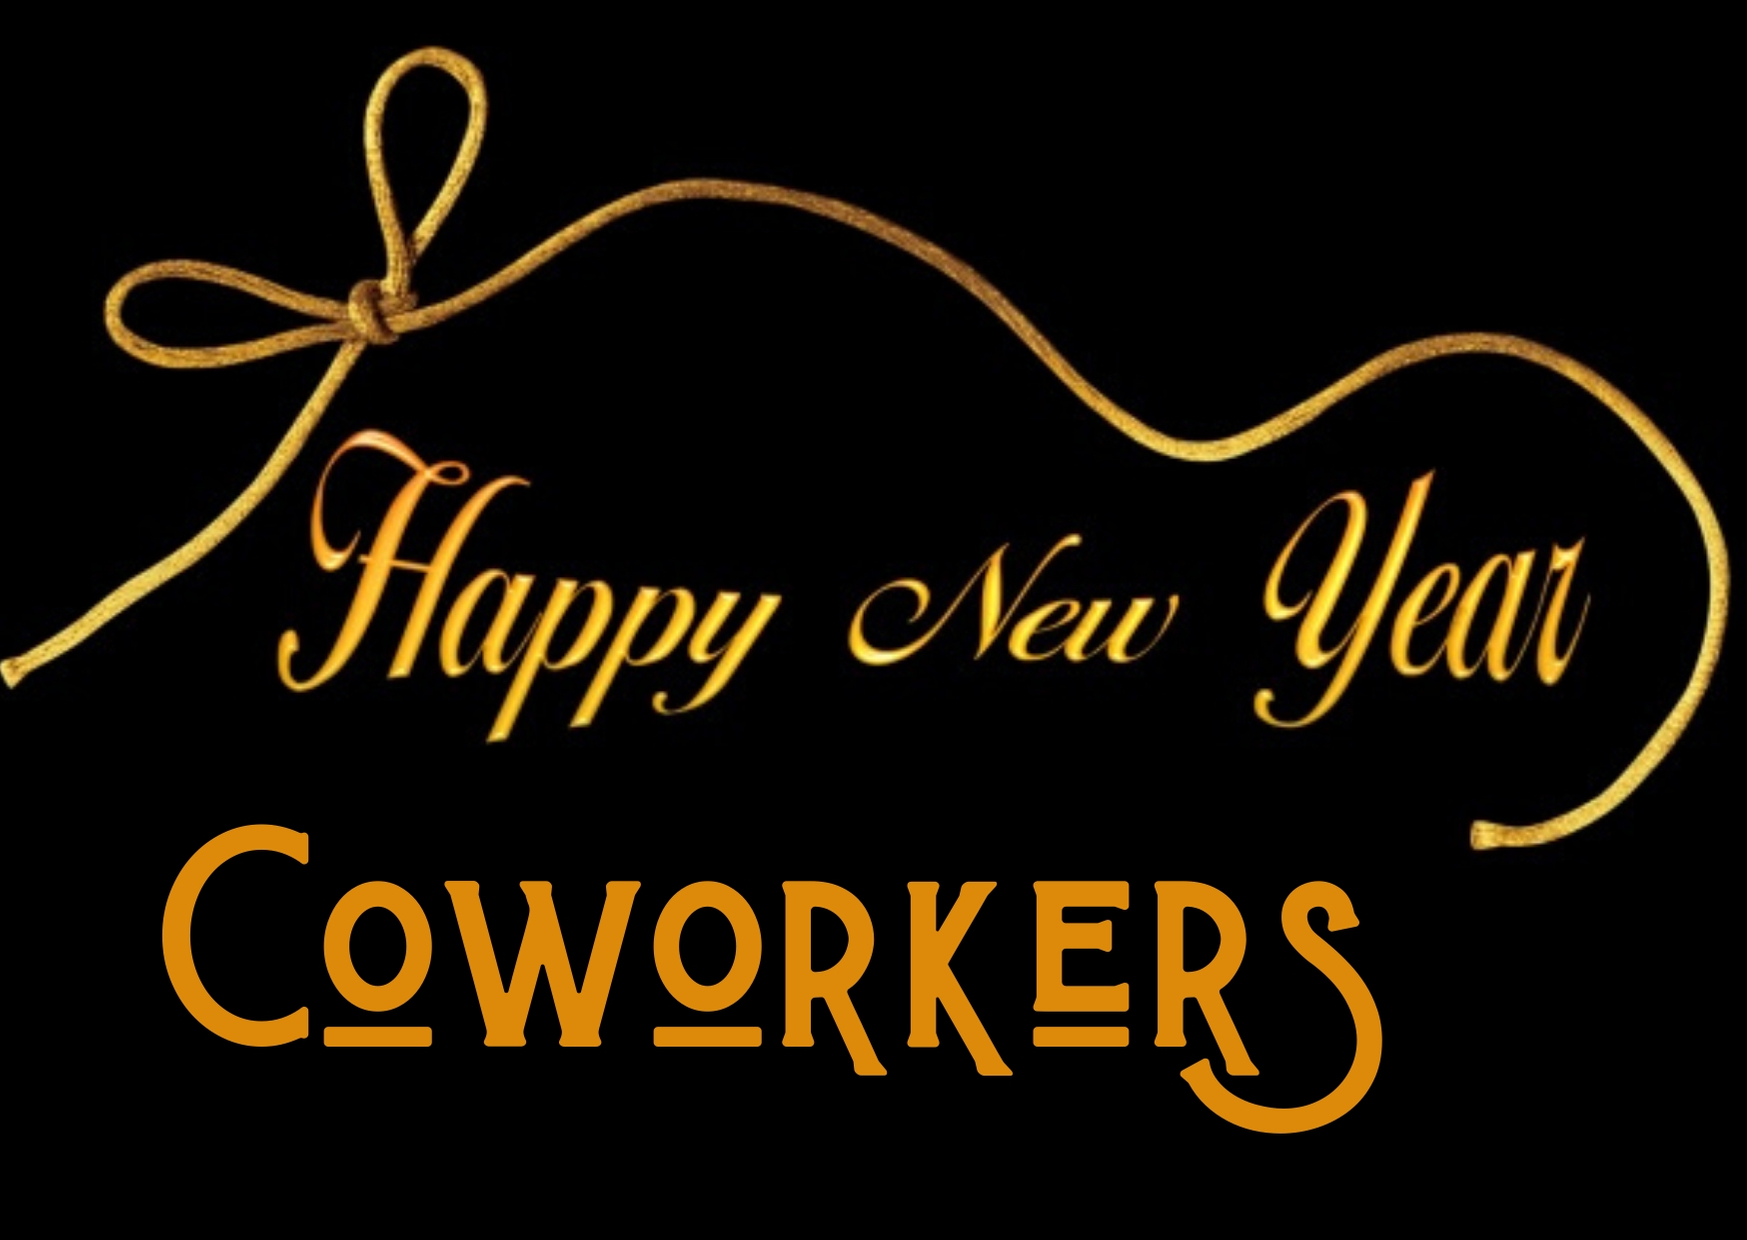 Happy New Year 2021 Wishes For Coworkers